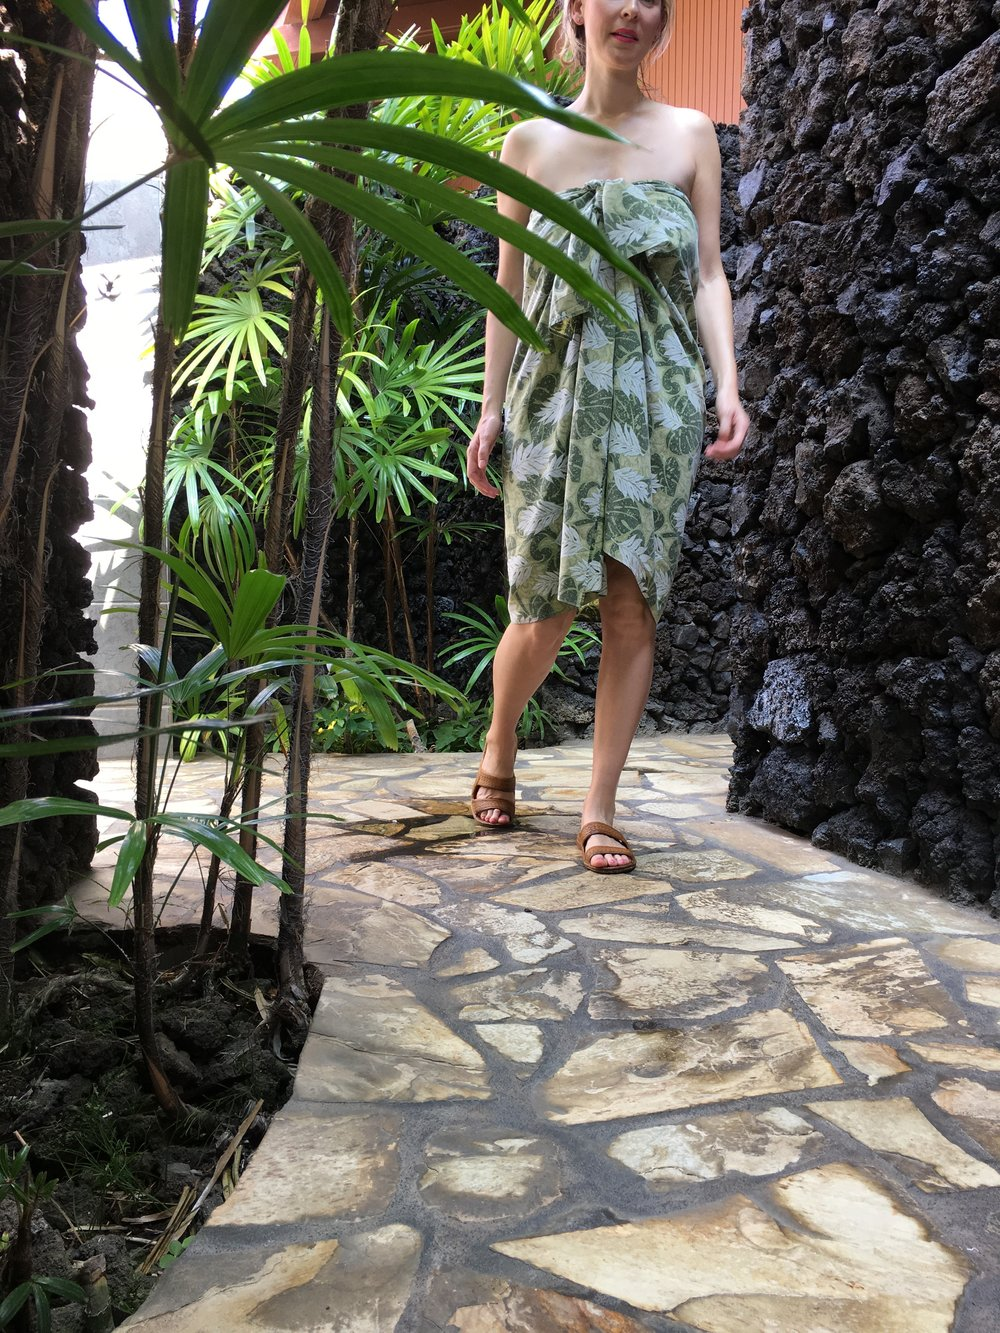 Outfitted in a traditional lava lava, I felt lighter the minute I stepped on the ancient lava flow's grounds graced with thatched-roof huts, pools of orchids, and palms rustling in the wind.